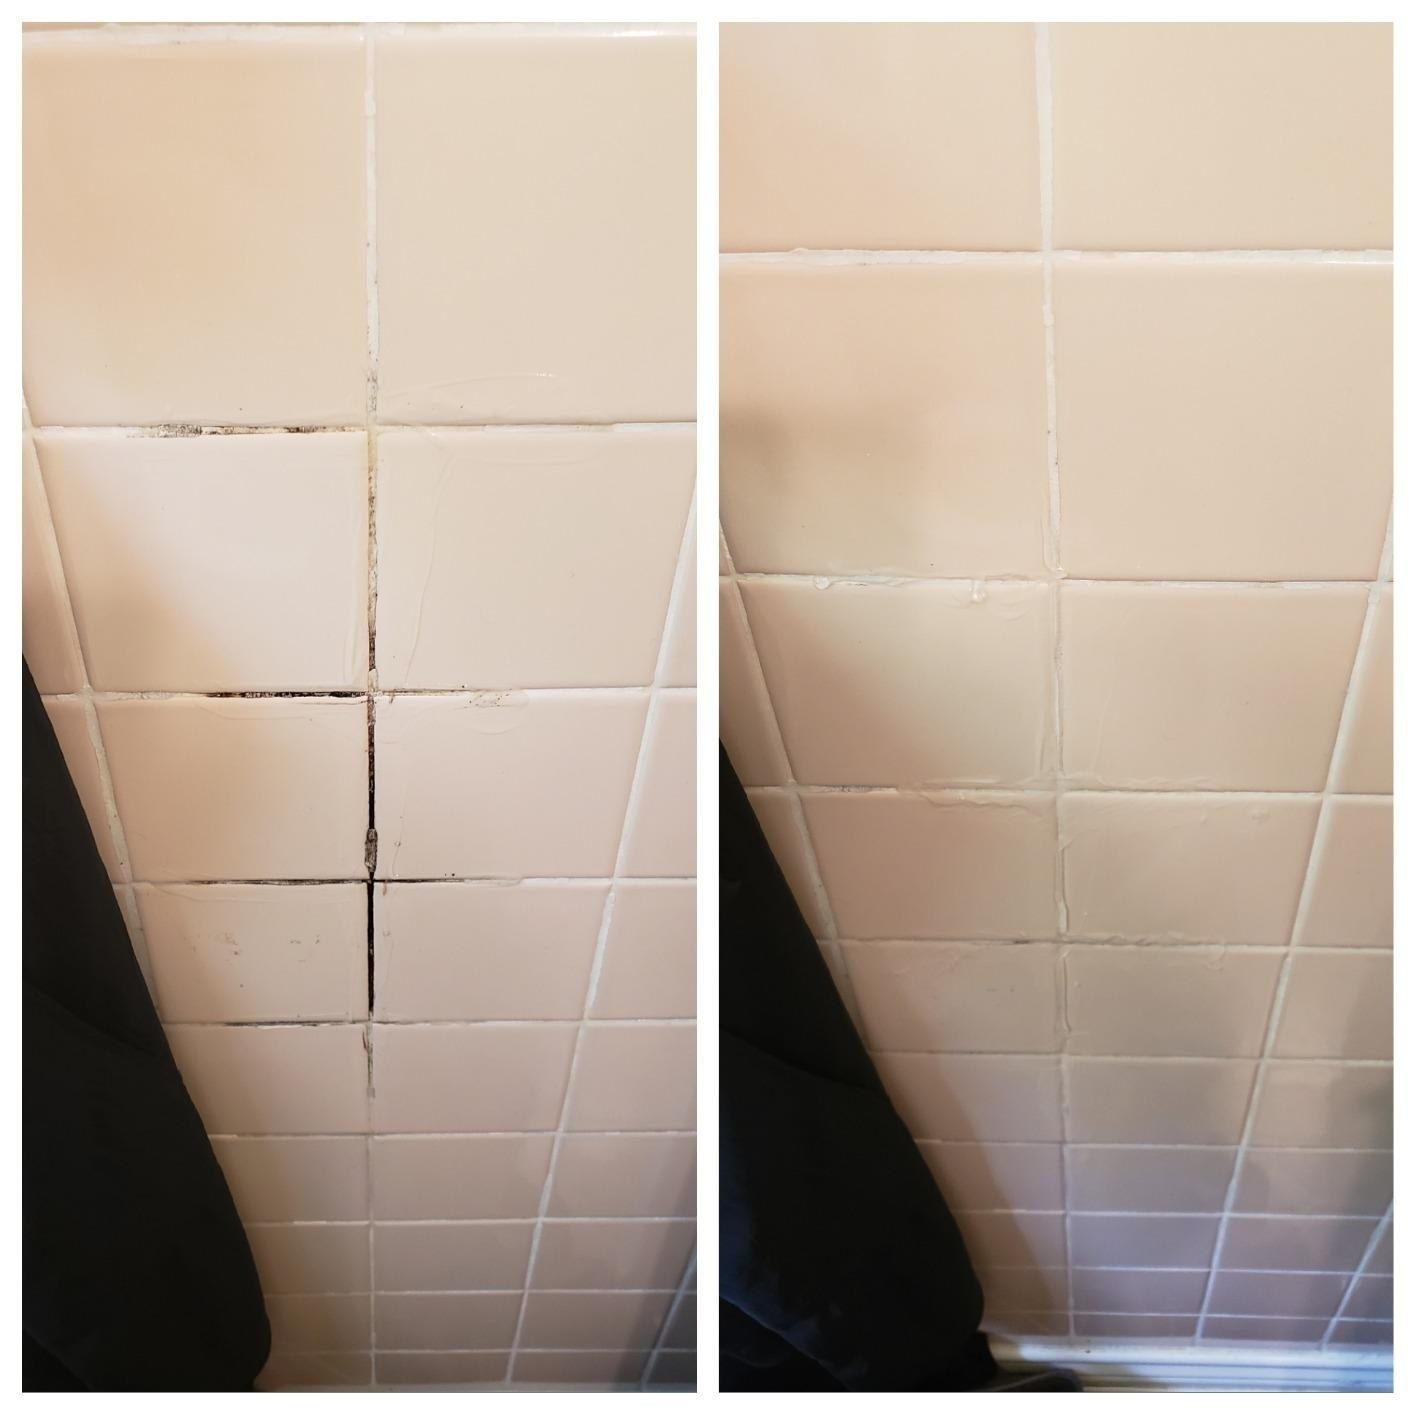 A reviewer's tile before and after removing black mold/grime on the grout